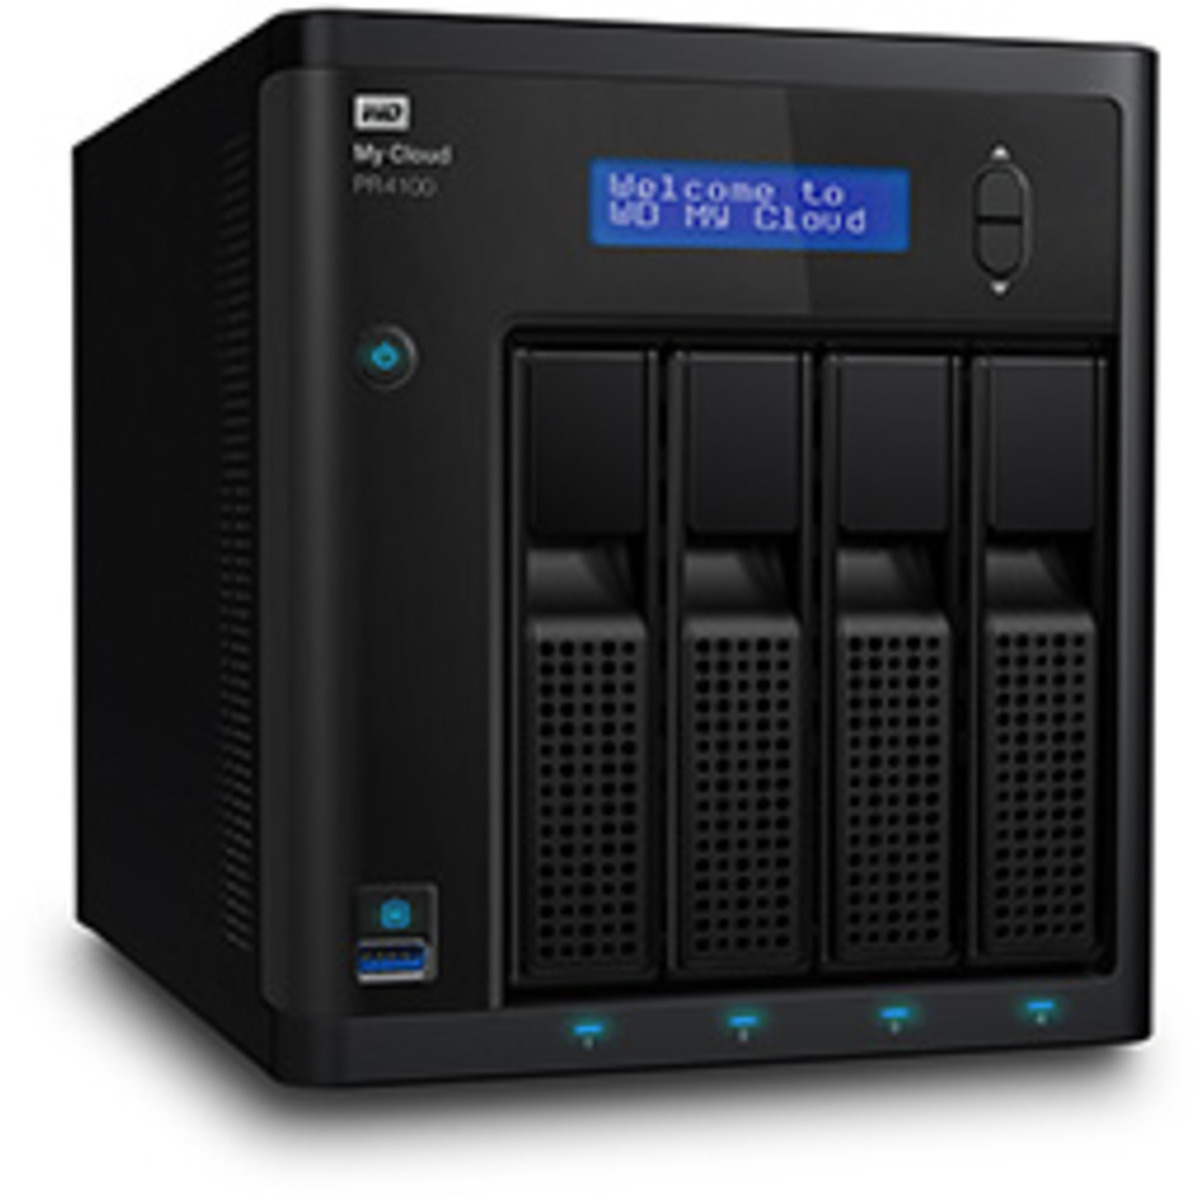 buy $1663 Western Digital My Cloud Pro PR4100 32tb Desktop NAS - Network Attached Storage Device 4x8000gb Western Digital Red NAS WD80EFZX 3.5 5400rpm SATA 6Gb/s HDD NAS Class Drives Installed - Burn-In Tested - nas headquarters buy network attached storage server device das new sale raid-5 free shipping usa My Cloud Pro PR4100